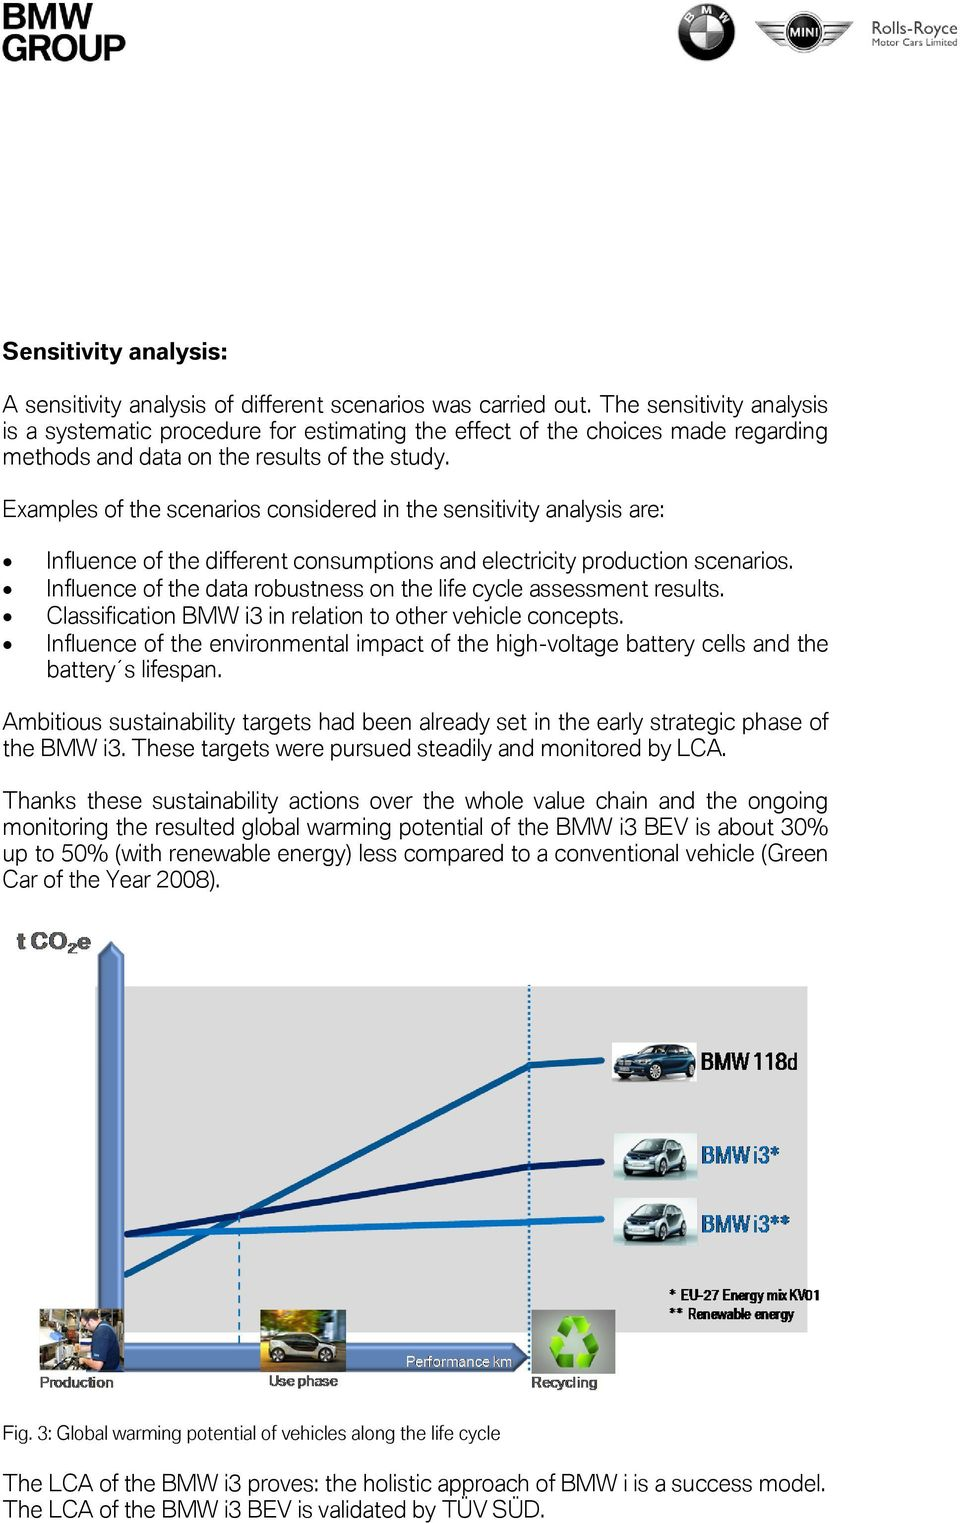 Environmental Certification Bmw I3 Pdf Ks3 Physics Electric Current And Potential Difference Revision 5 Examples Of The Scenarios Considered In Sensitivity Analysis Are Influence Different Consumptions